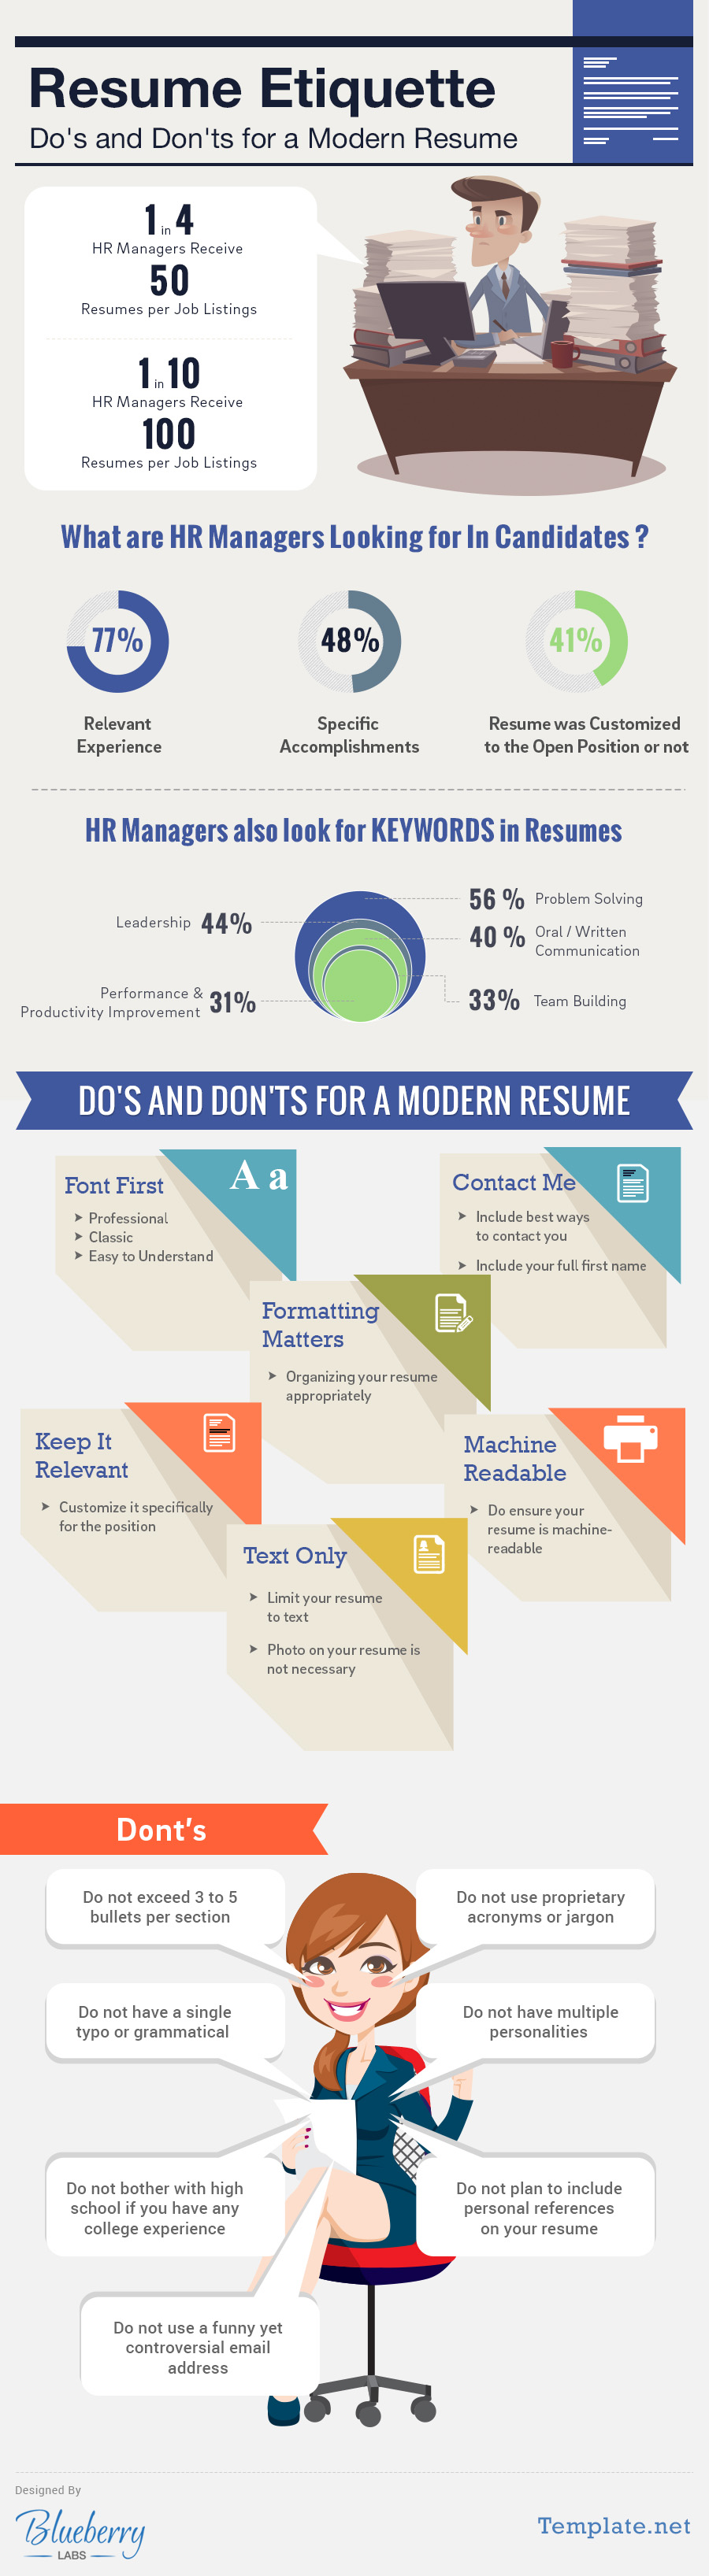 Resume Etiquette: Do's and Don'ts for a Modern Resume